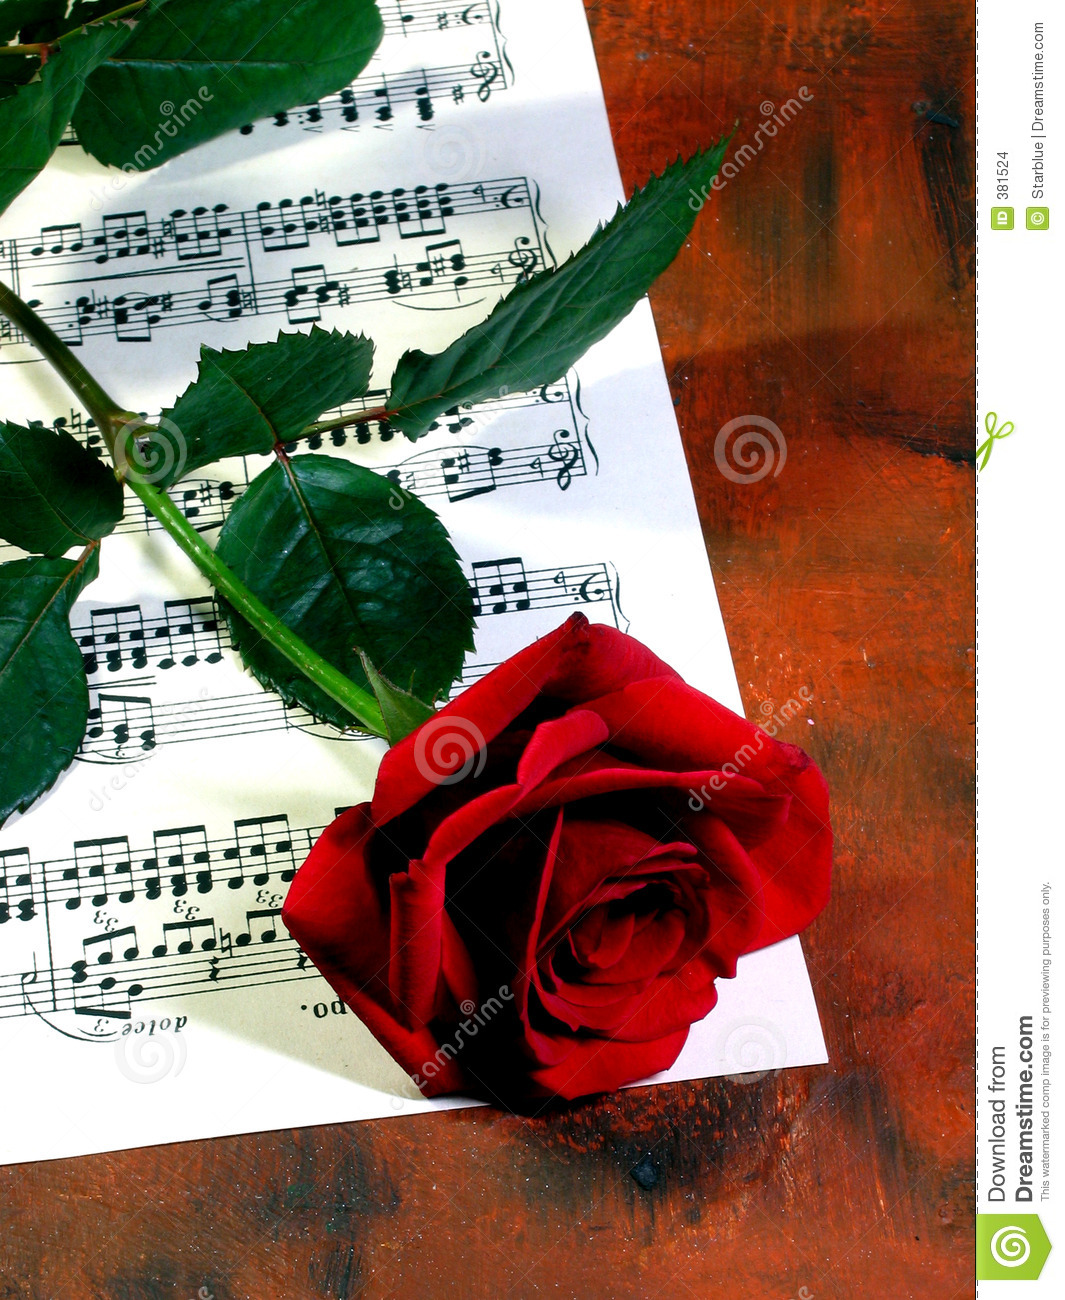 Red rose and music sheet